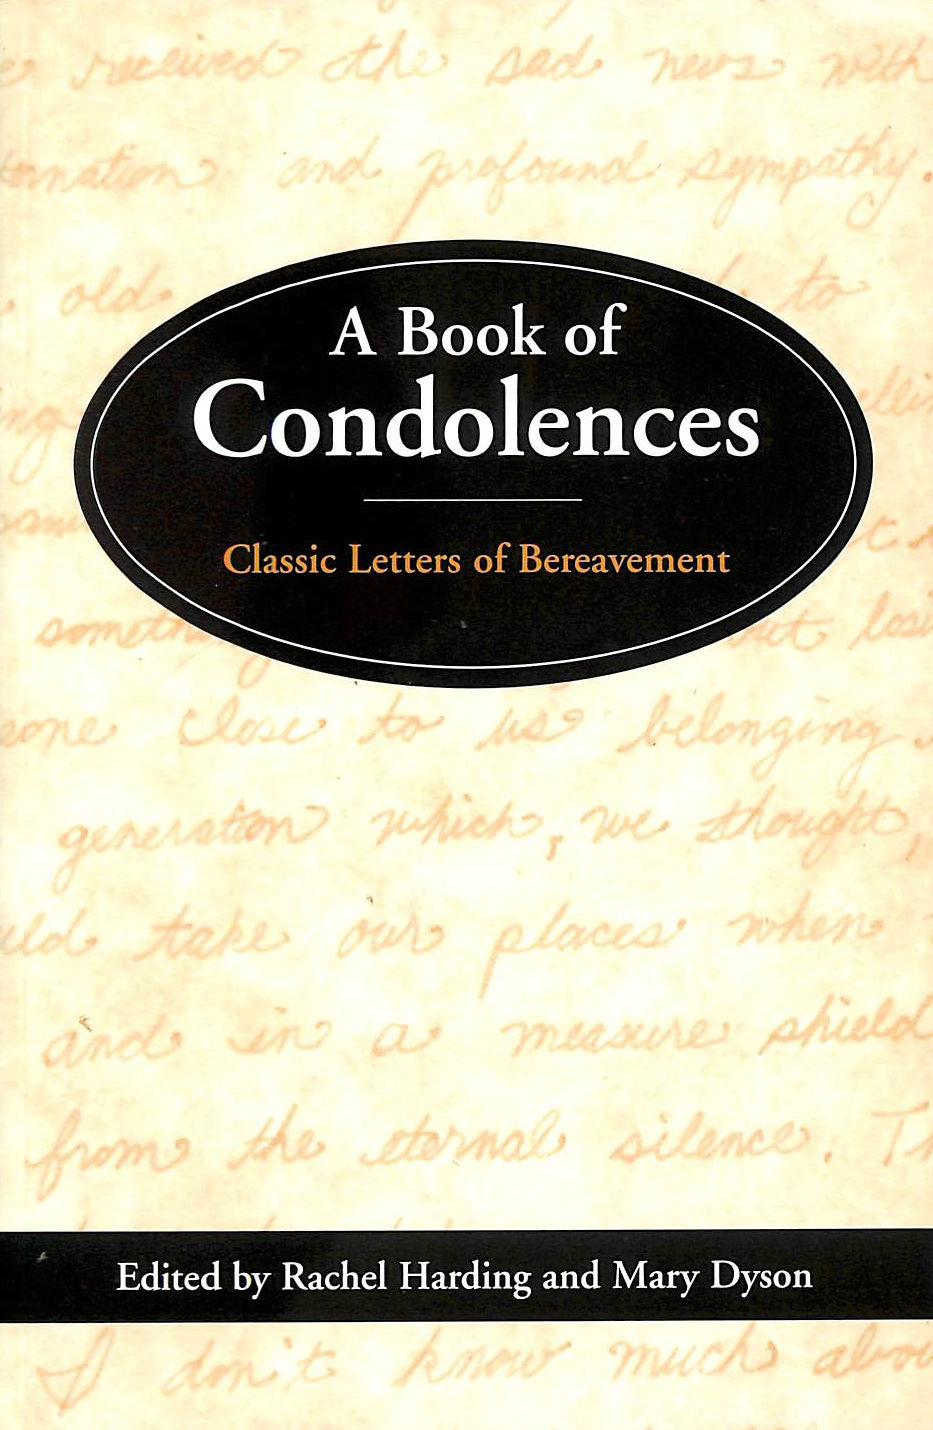 Image for Book of Condolences - Classic Letters of Bereavement